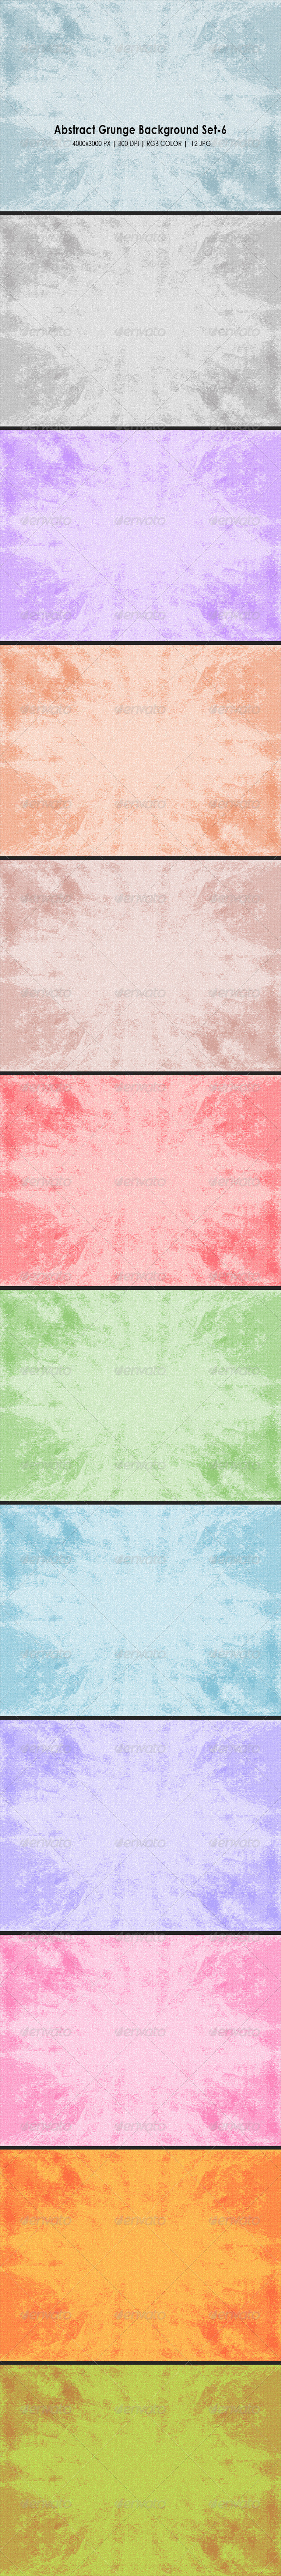 Abstract Grunge Background Set 6 - Abstract Backgrounds